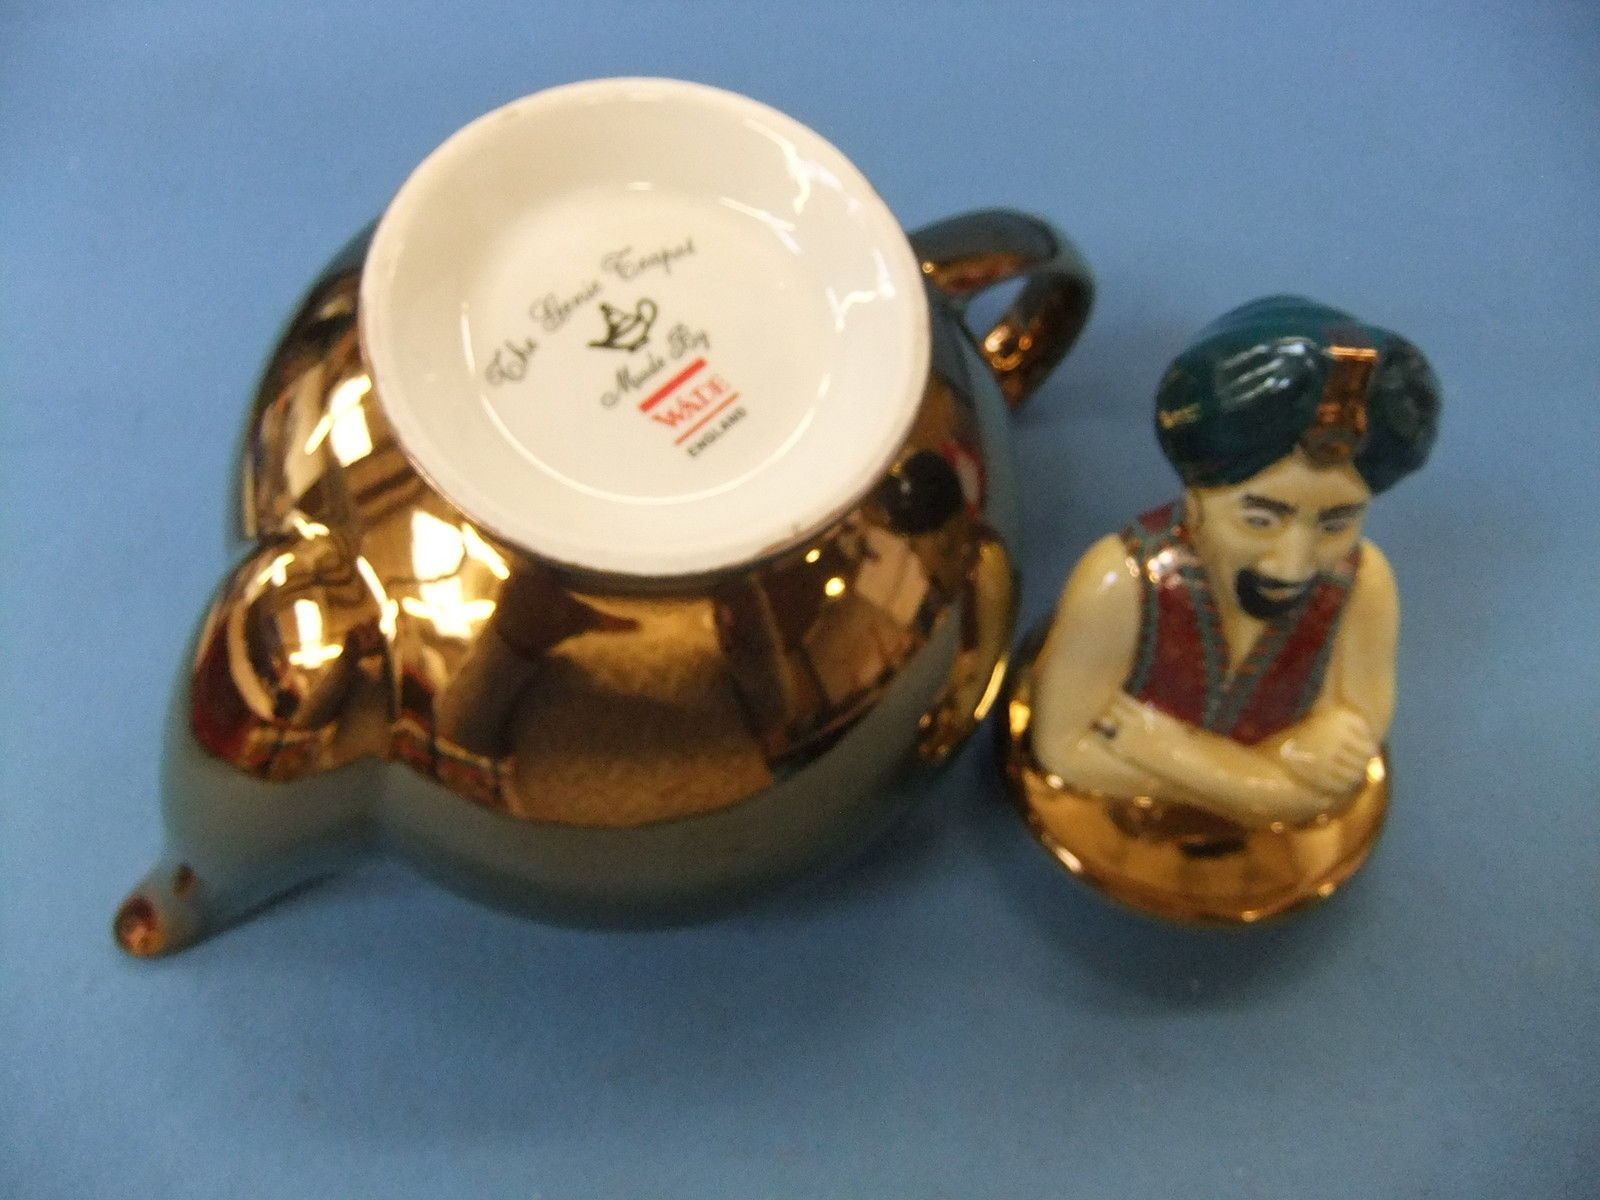 'The Genie Teapot' by Wade - The Earlier Copper Lustre Finish Collector's Teapot | eBay